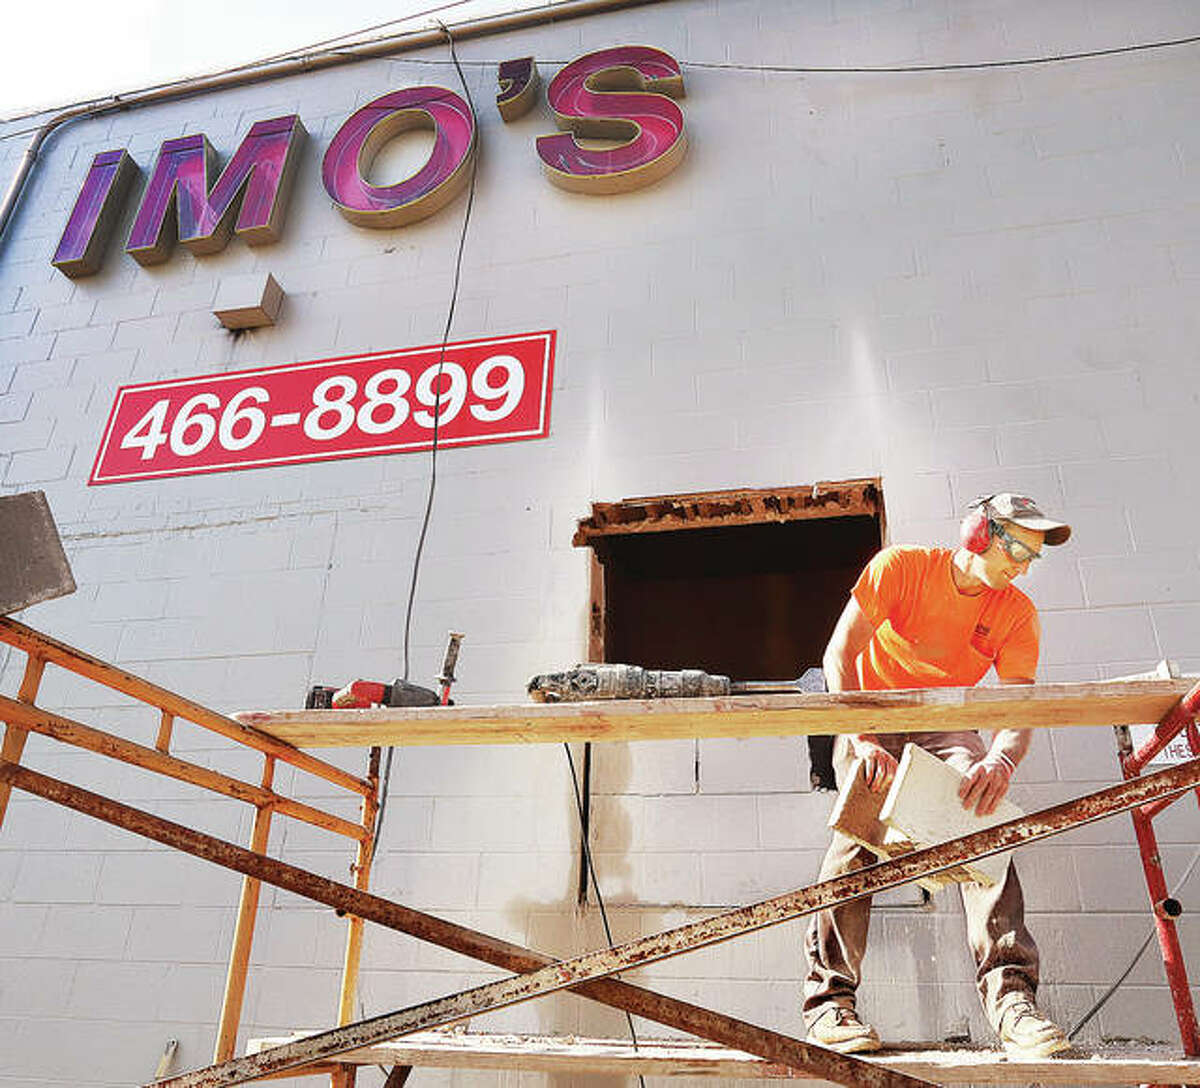 Workers on Monday cut a hole in the north side of the Godfrey Imo's Restaurant at 2704 Godfrey Road for a drive-up window. The restaurant, which was severely damaged in an October fire, previously did not have a drive-up window. No date has been set for the restaurant's reopening.